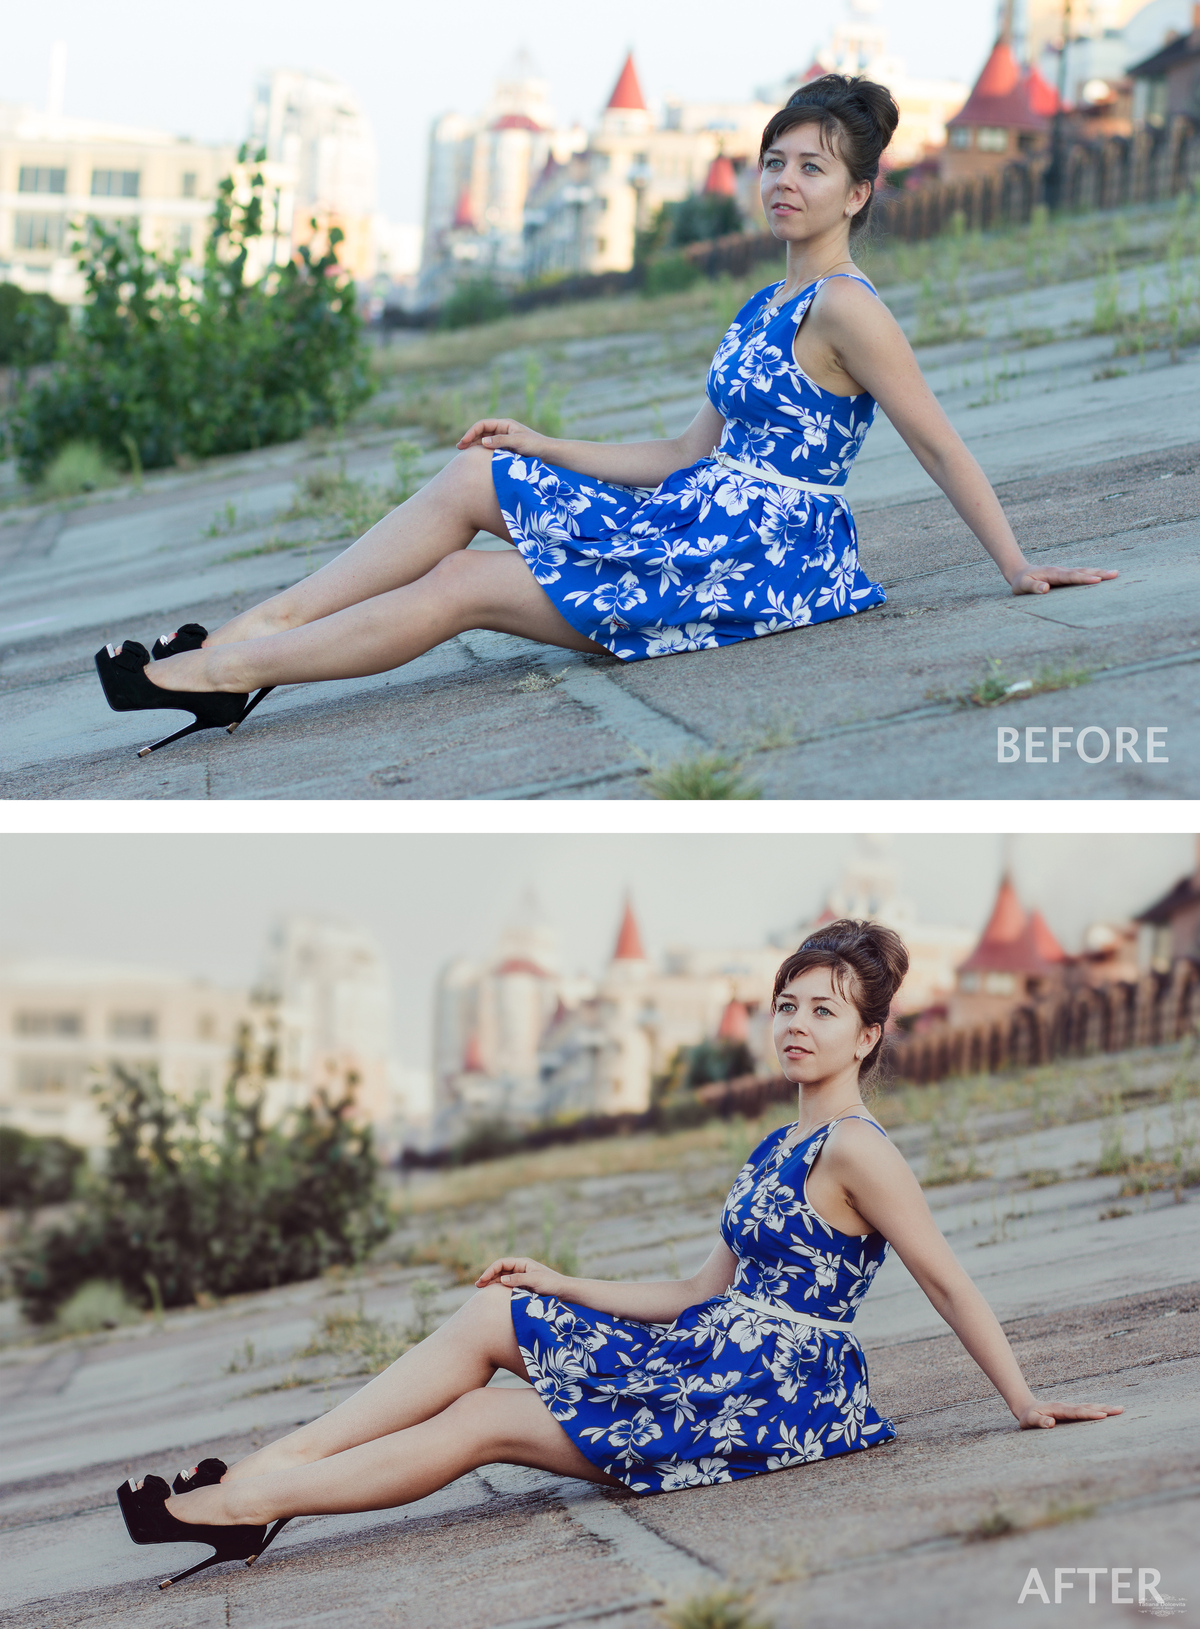 BEFORE AND AFTER-ДО И ПОСЛЕ